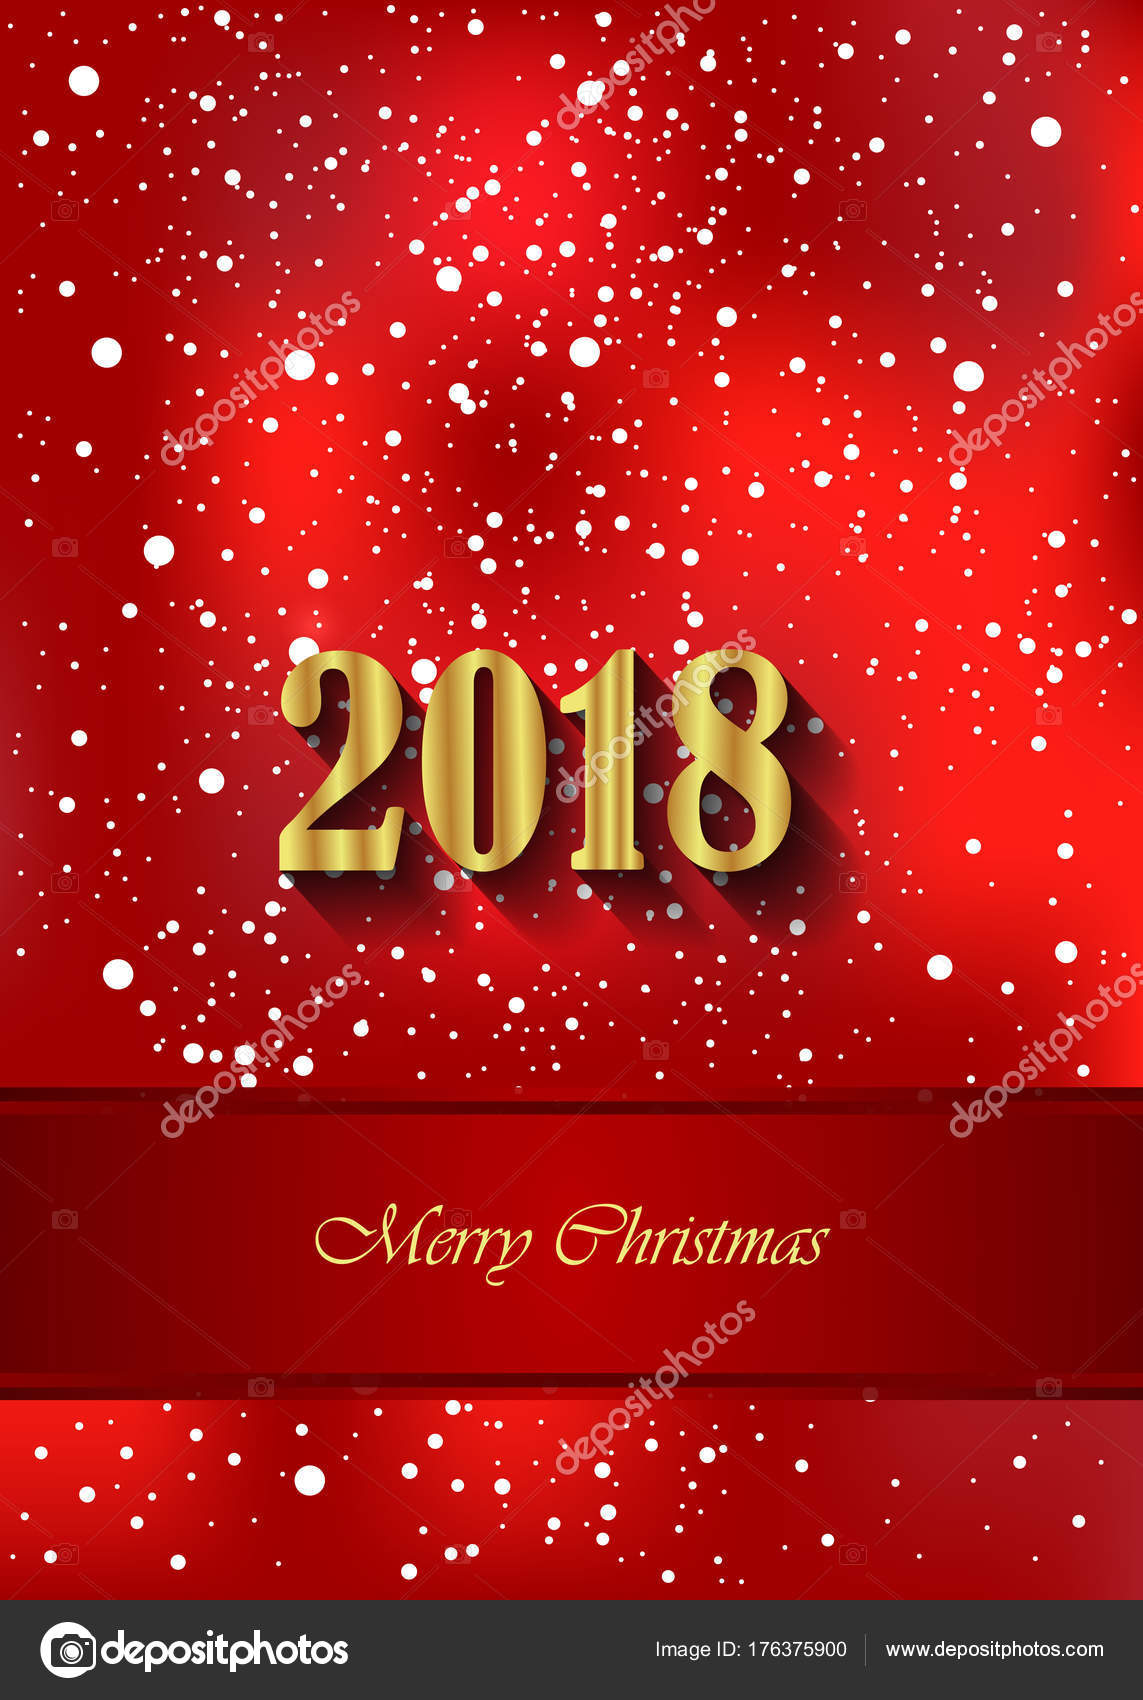 Merry Christmas Poster 2018.2018 Merry Christmas Background Your Invitations Festive